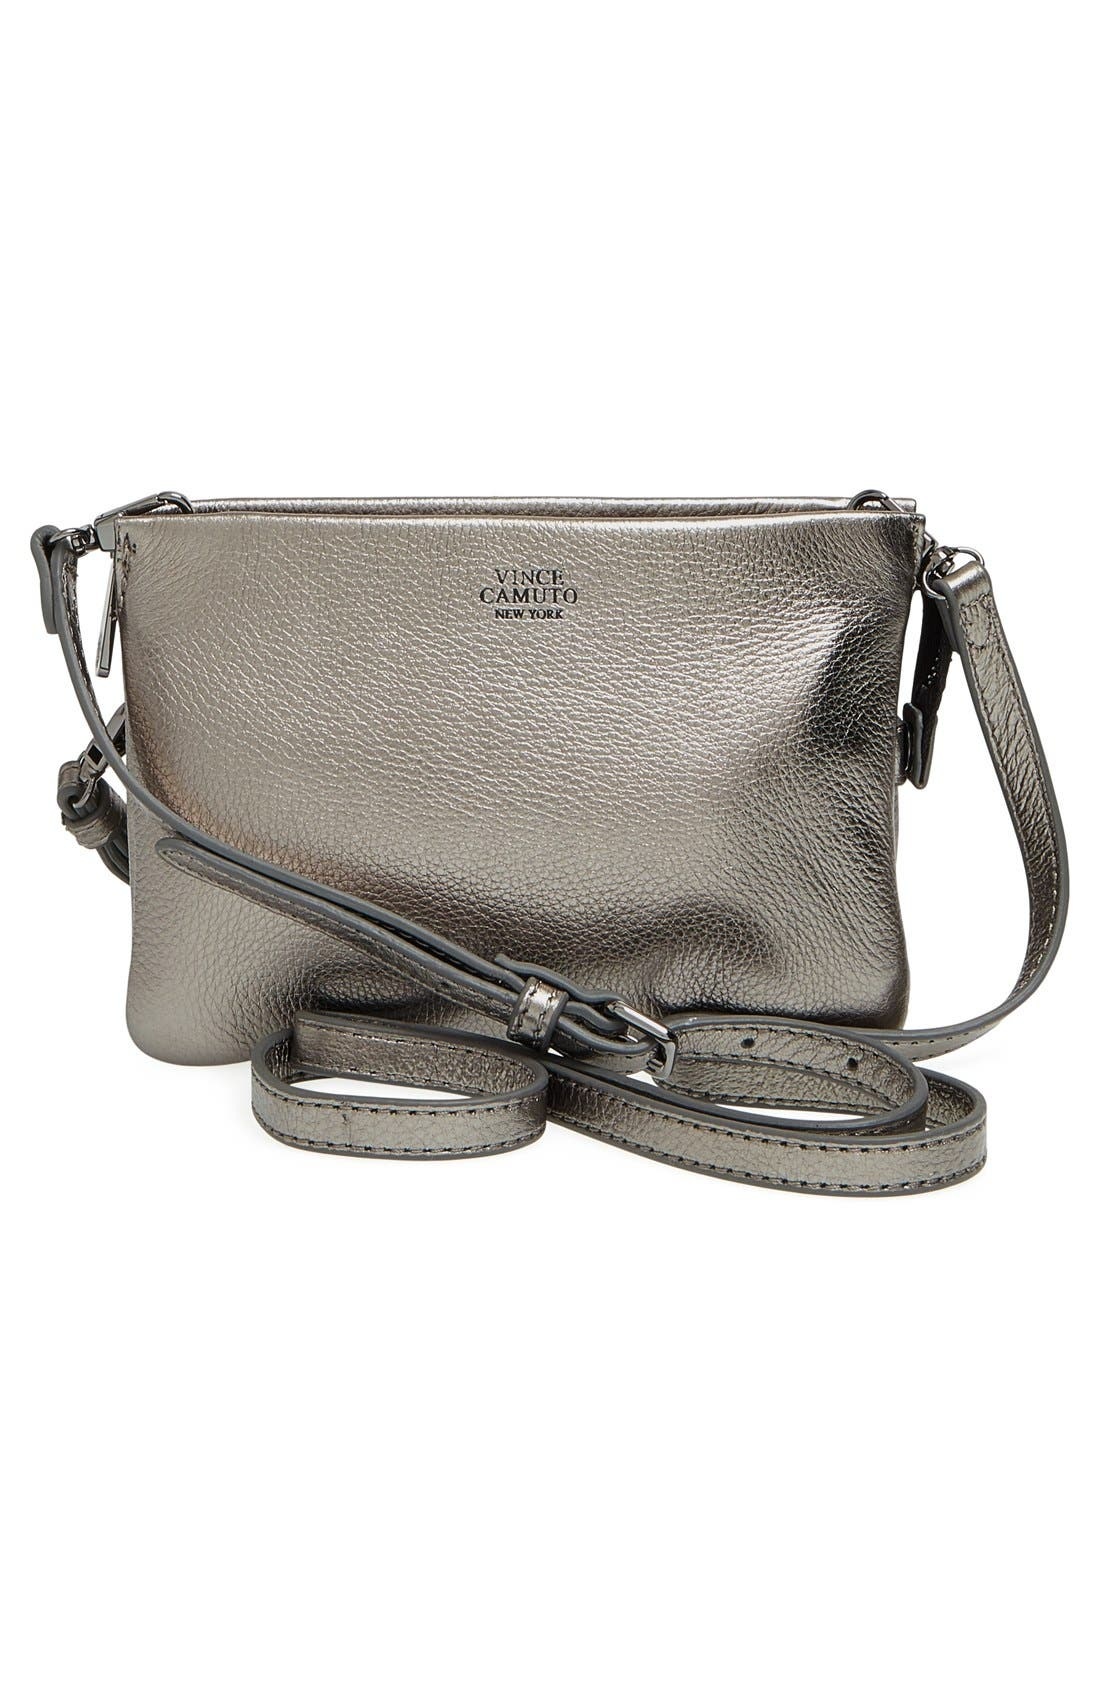 'Cami' Leather Crossbody Bag,                             Alternate thumbnail 74, color,